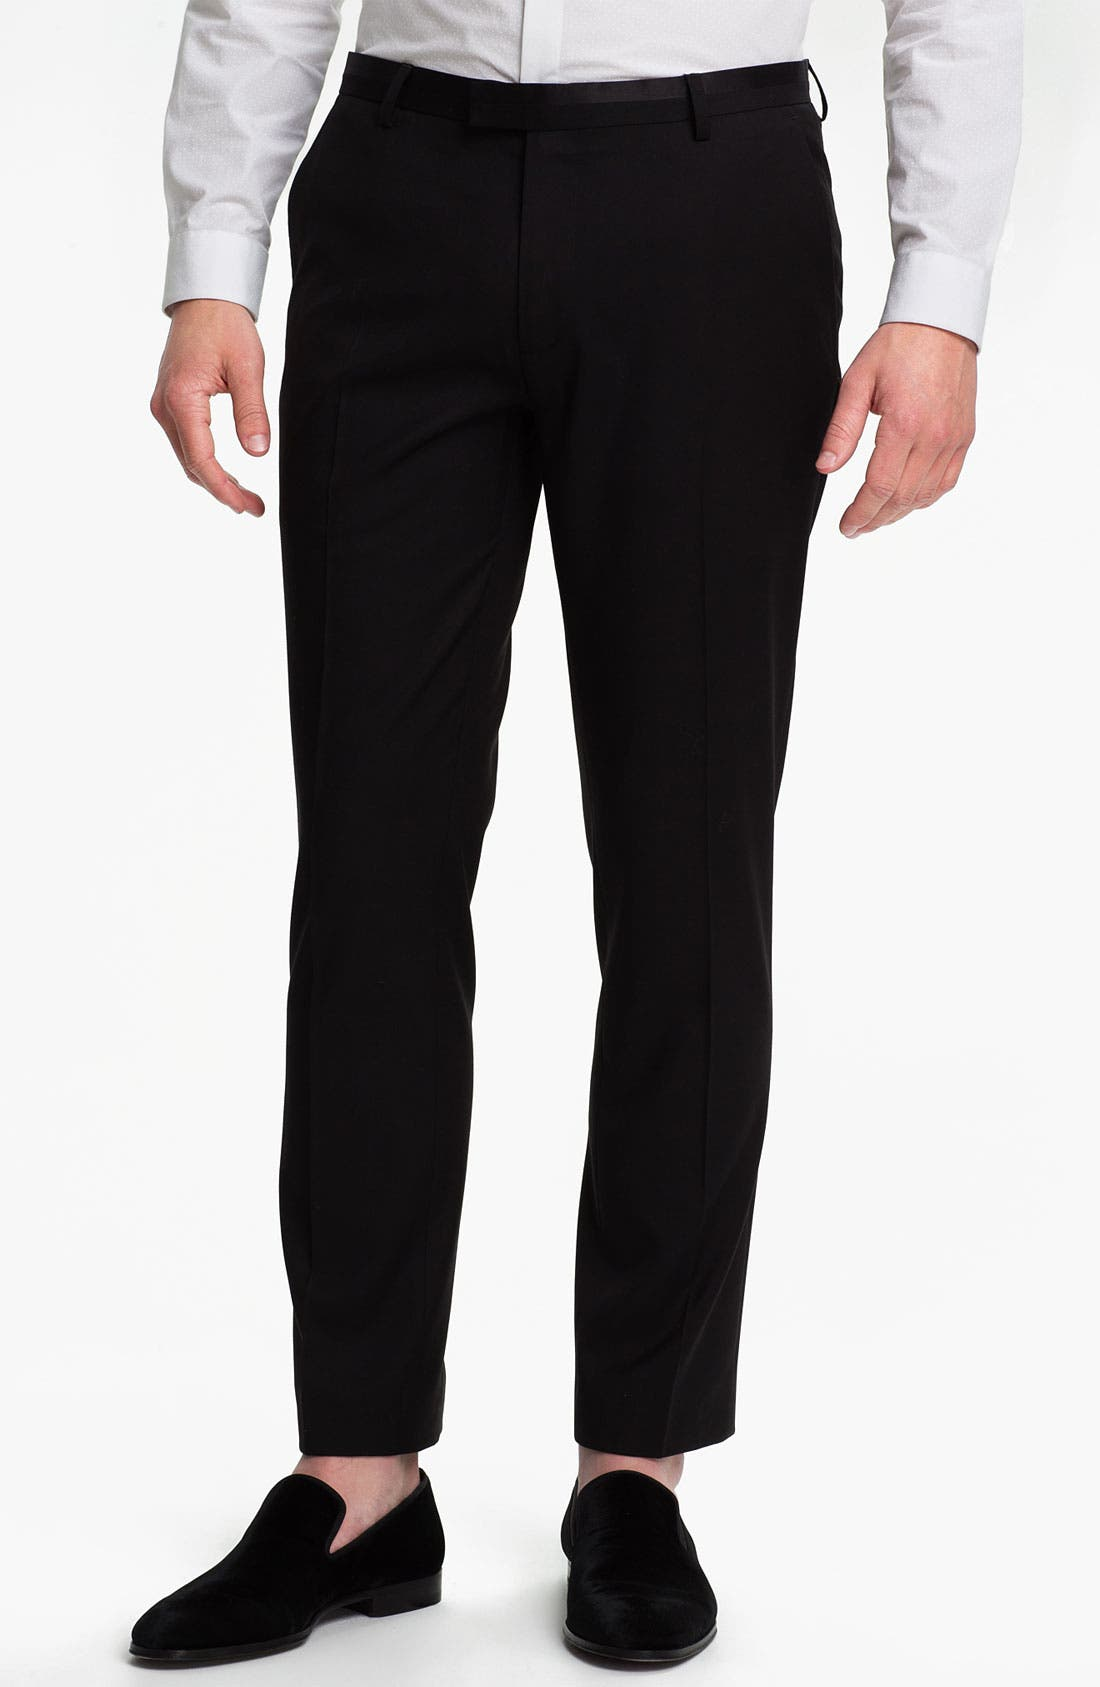 Main Image - Topman Black Satin Trim Trousers